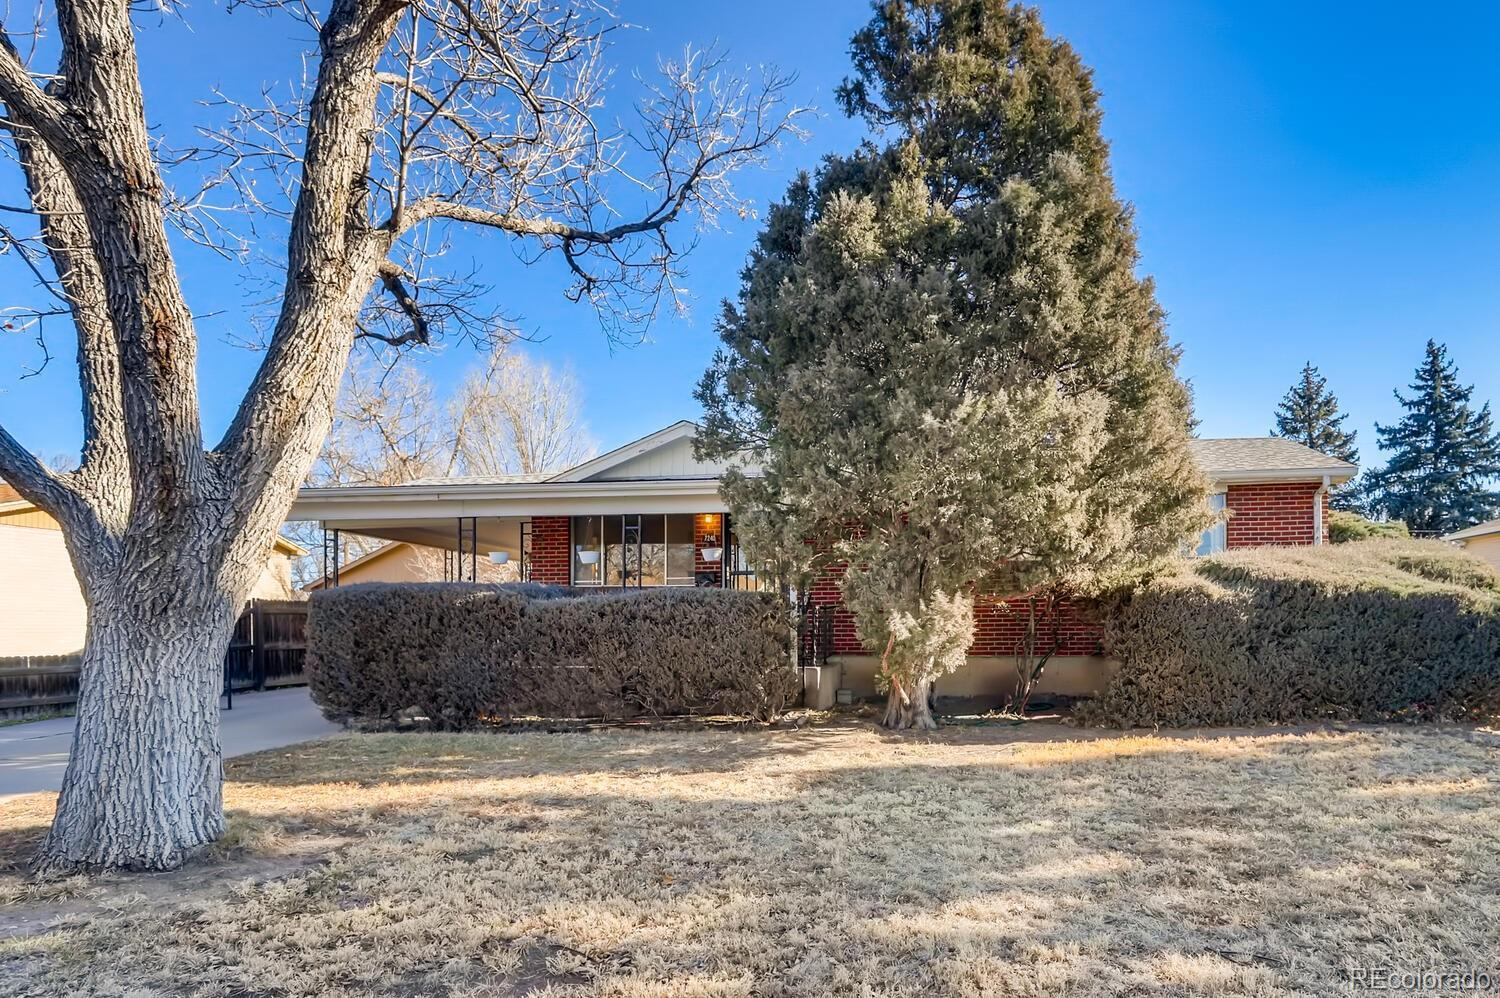 7240 Winona Court, Westminster, CO 80030 - #: 5059046